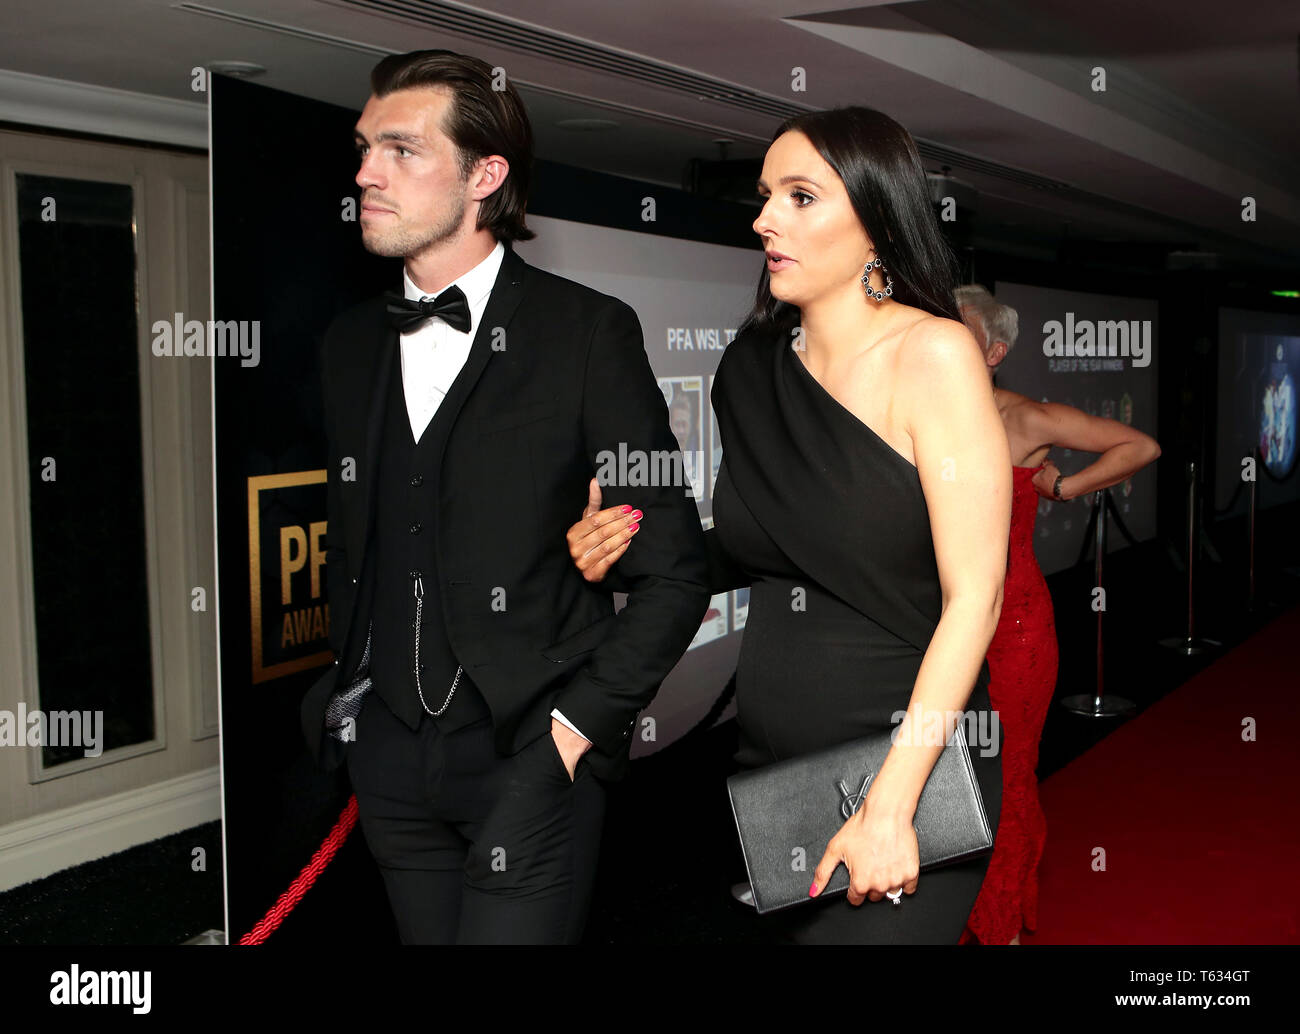 Guests arrive ahead of the 2019 PFA Awards at the Grosvenor House Hotel, London. - Stock Image